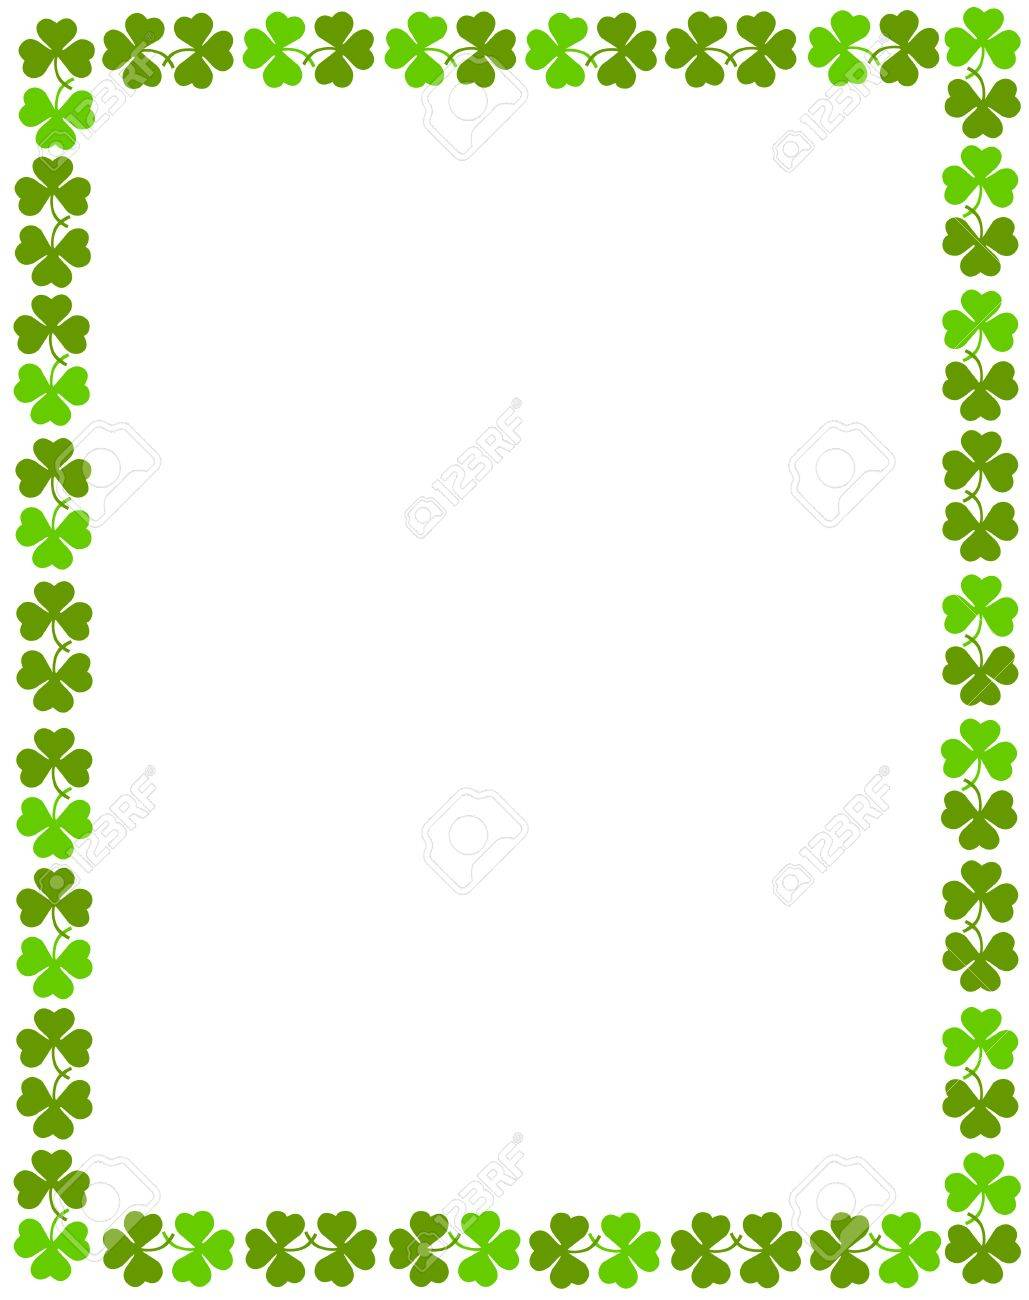 Download Free png Green Clover St. Patrick\'s Day Background.